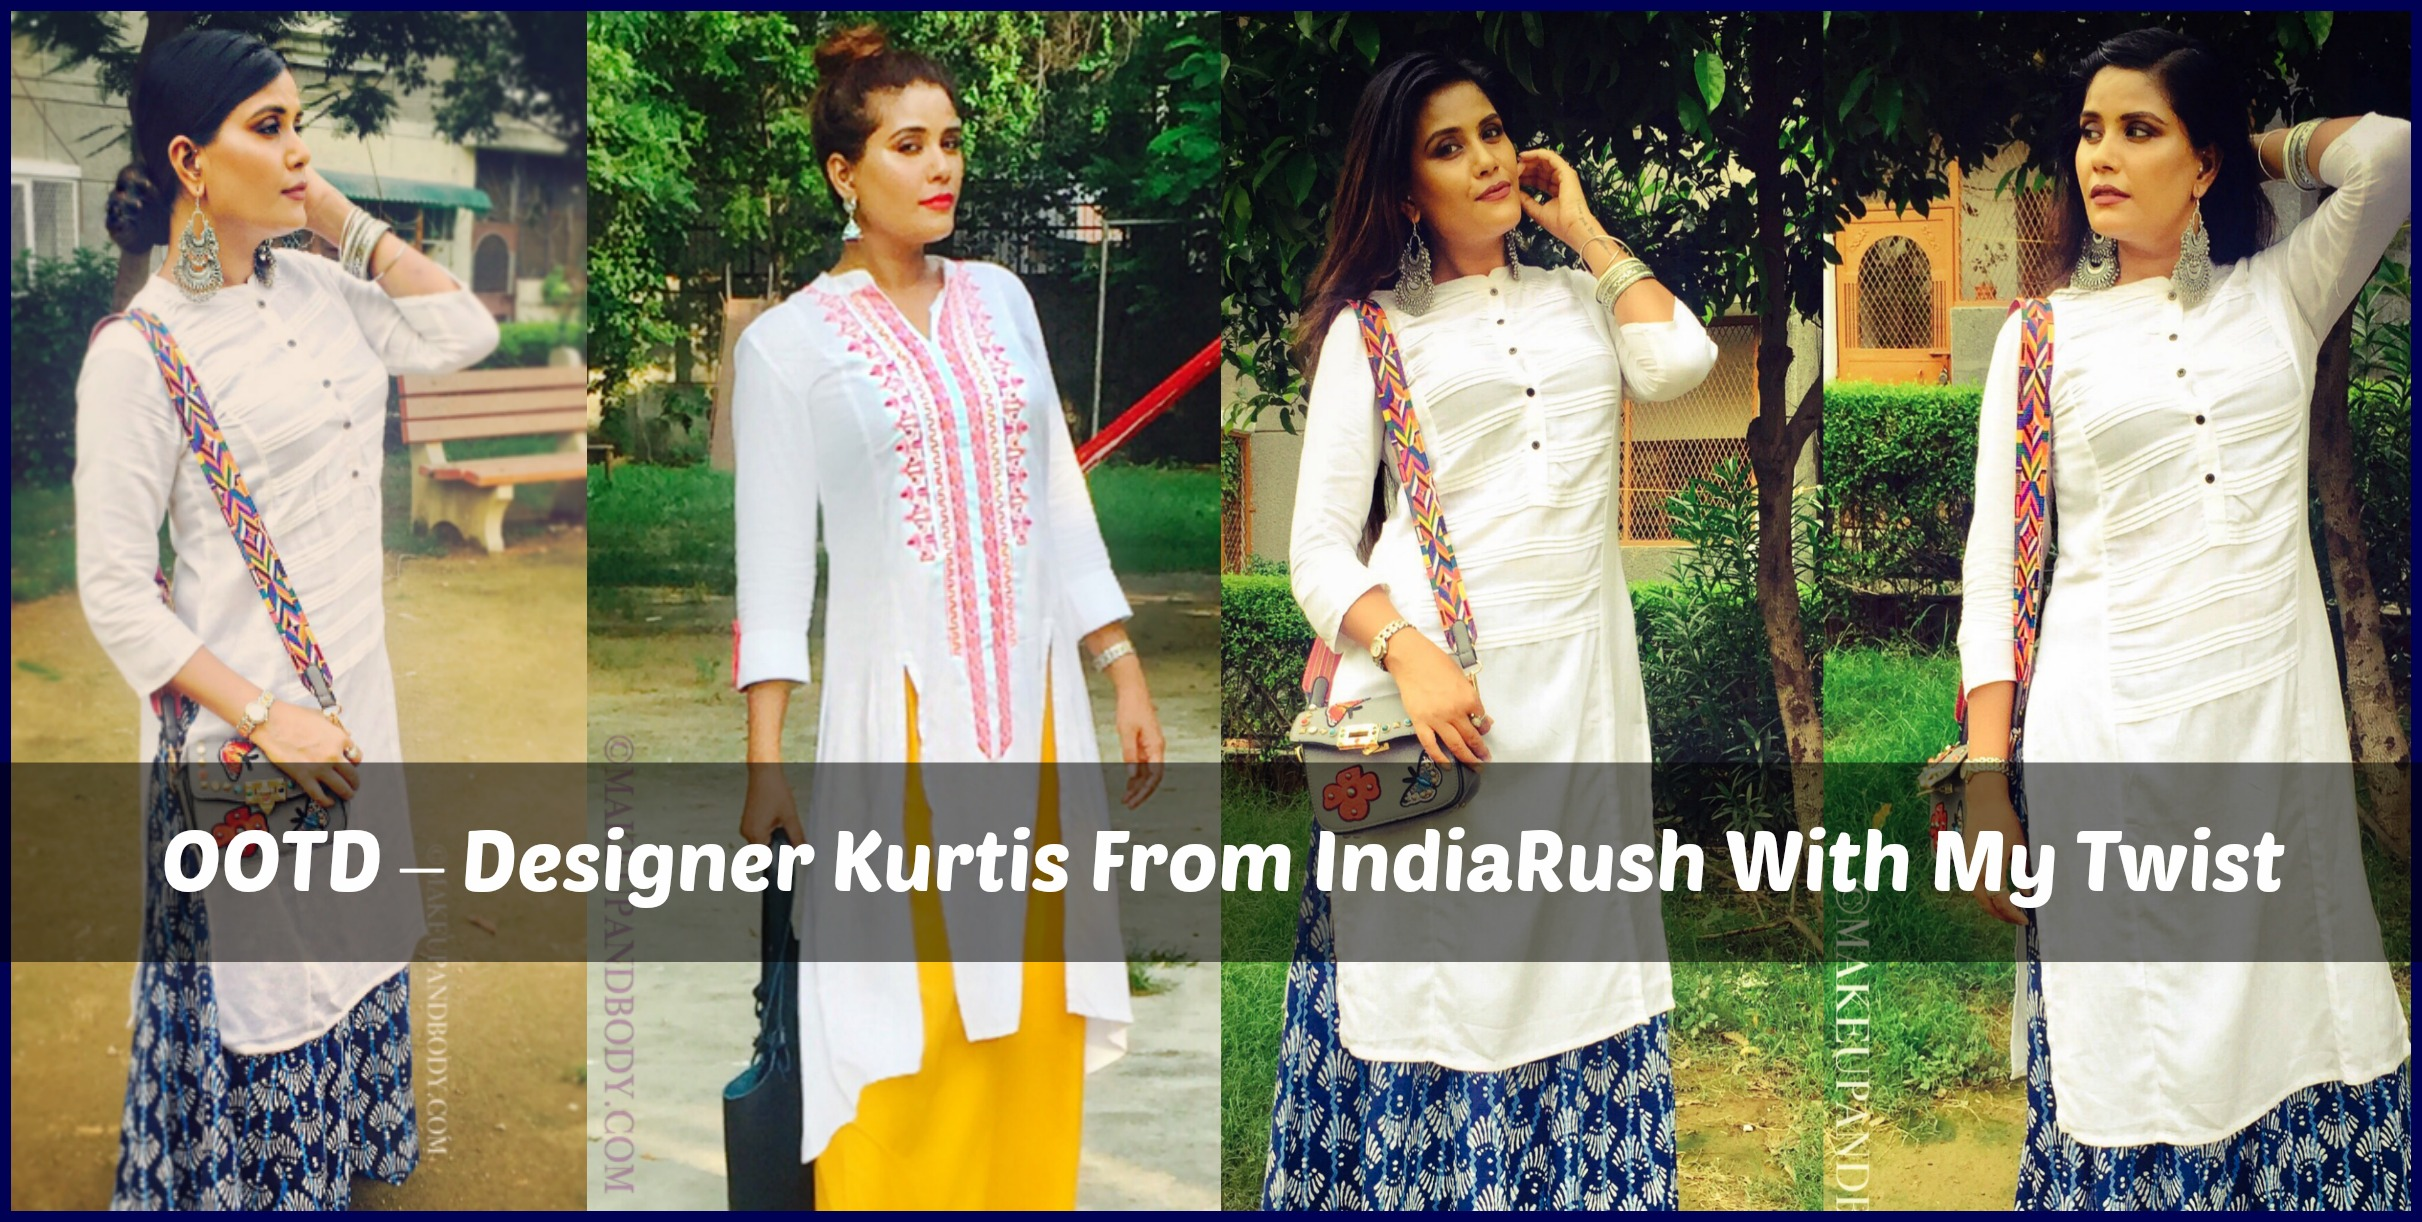 OOTD – Designer Kurtis From IndiaRush With My Twist